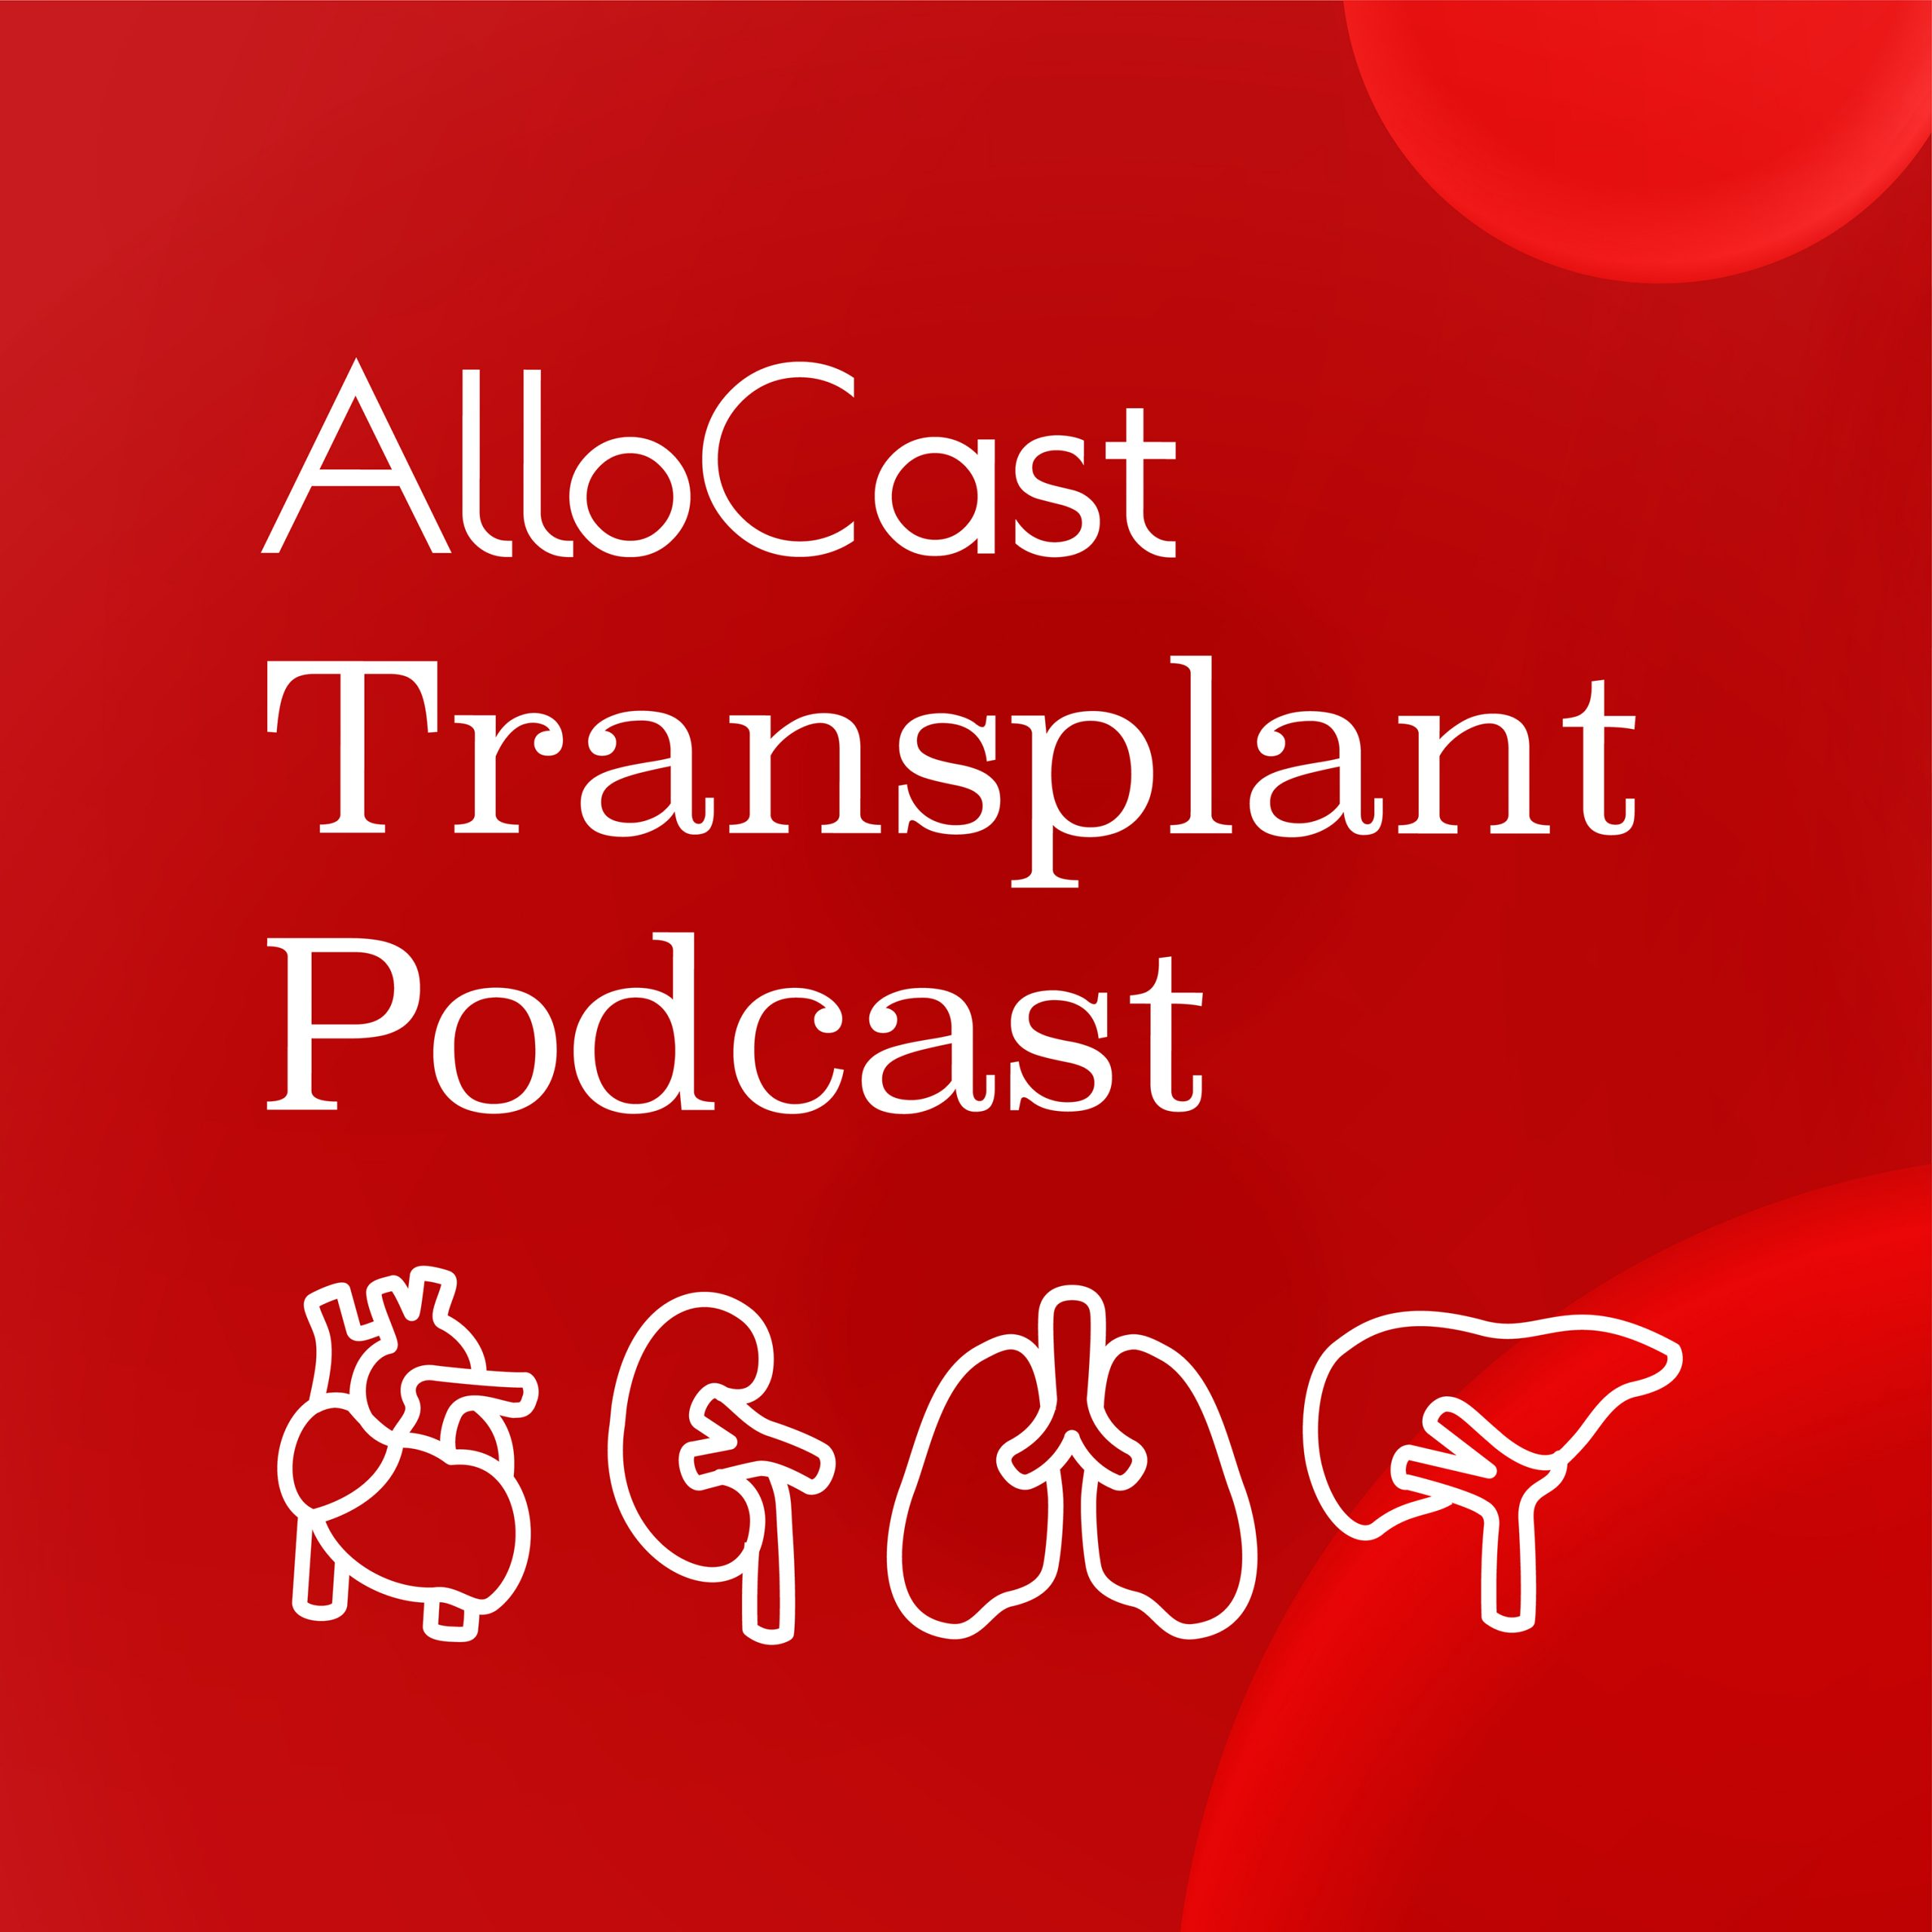 S01 E01 – Easier Health Management for Patients with AlloCare, a Digital Health App for Transplant Patient Management